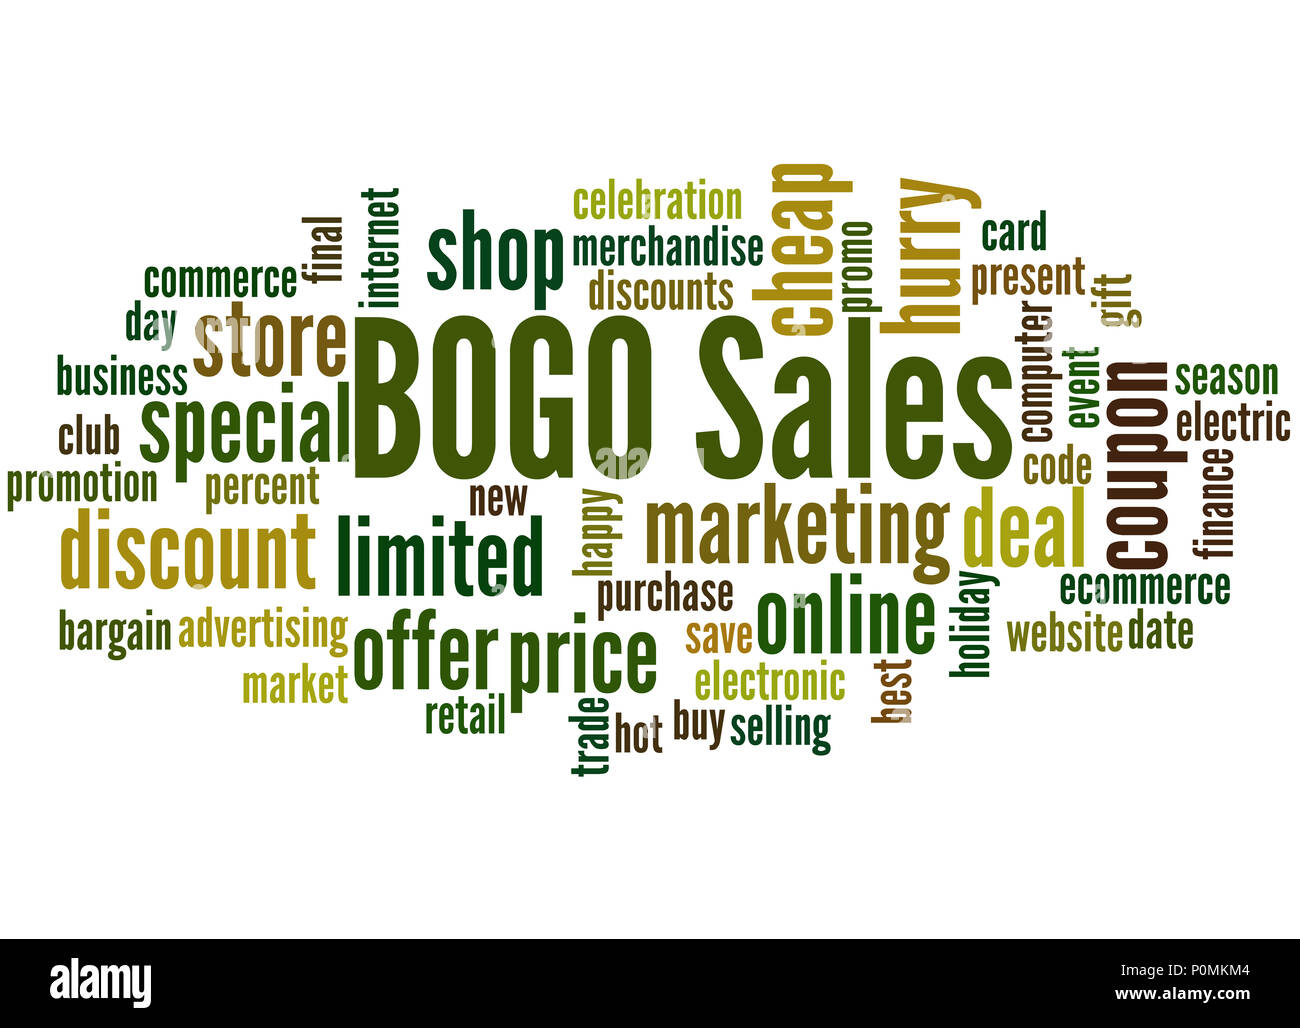 BOGO sales word cloud concept on white background  Buy One Get One